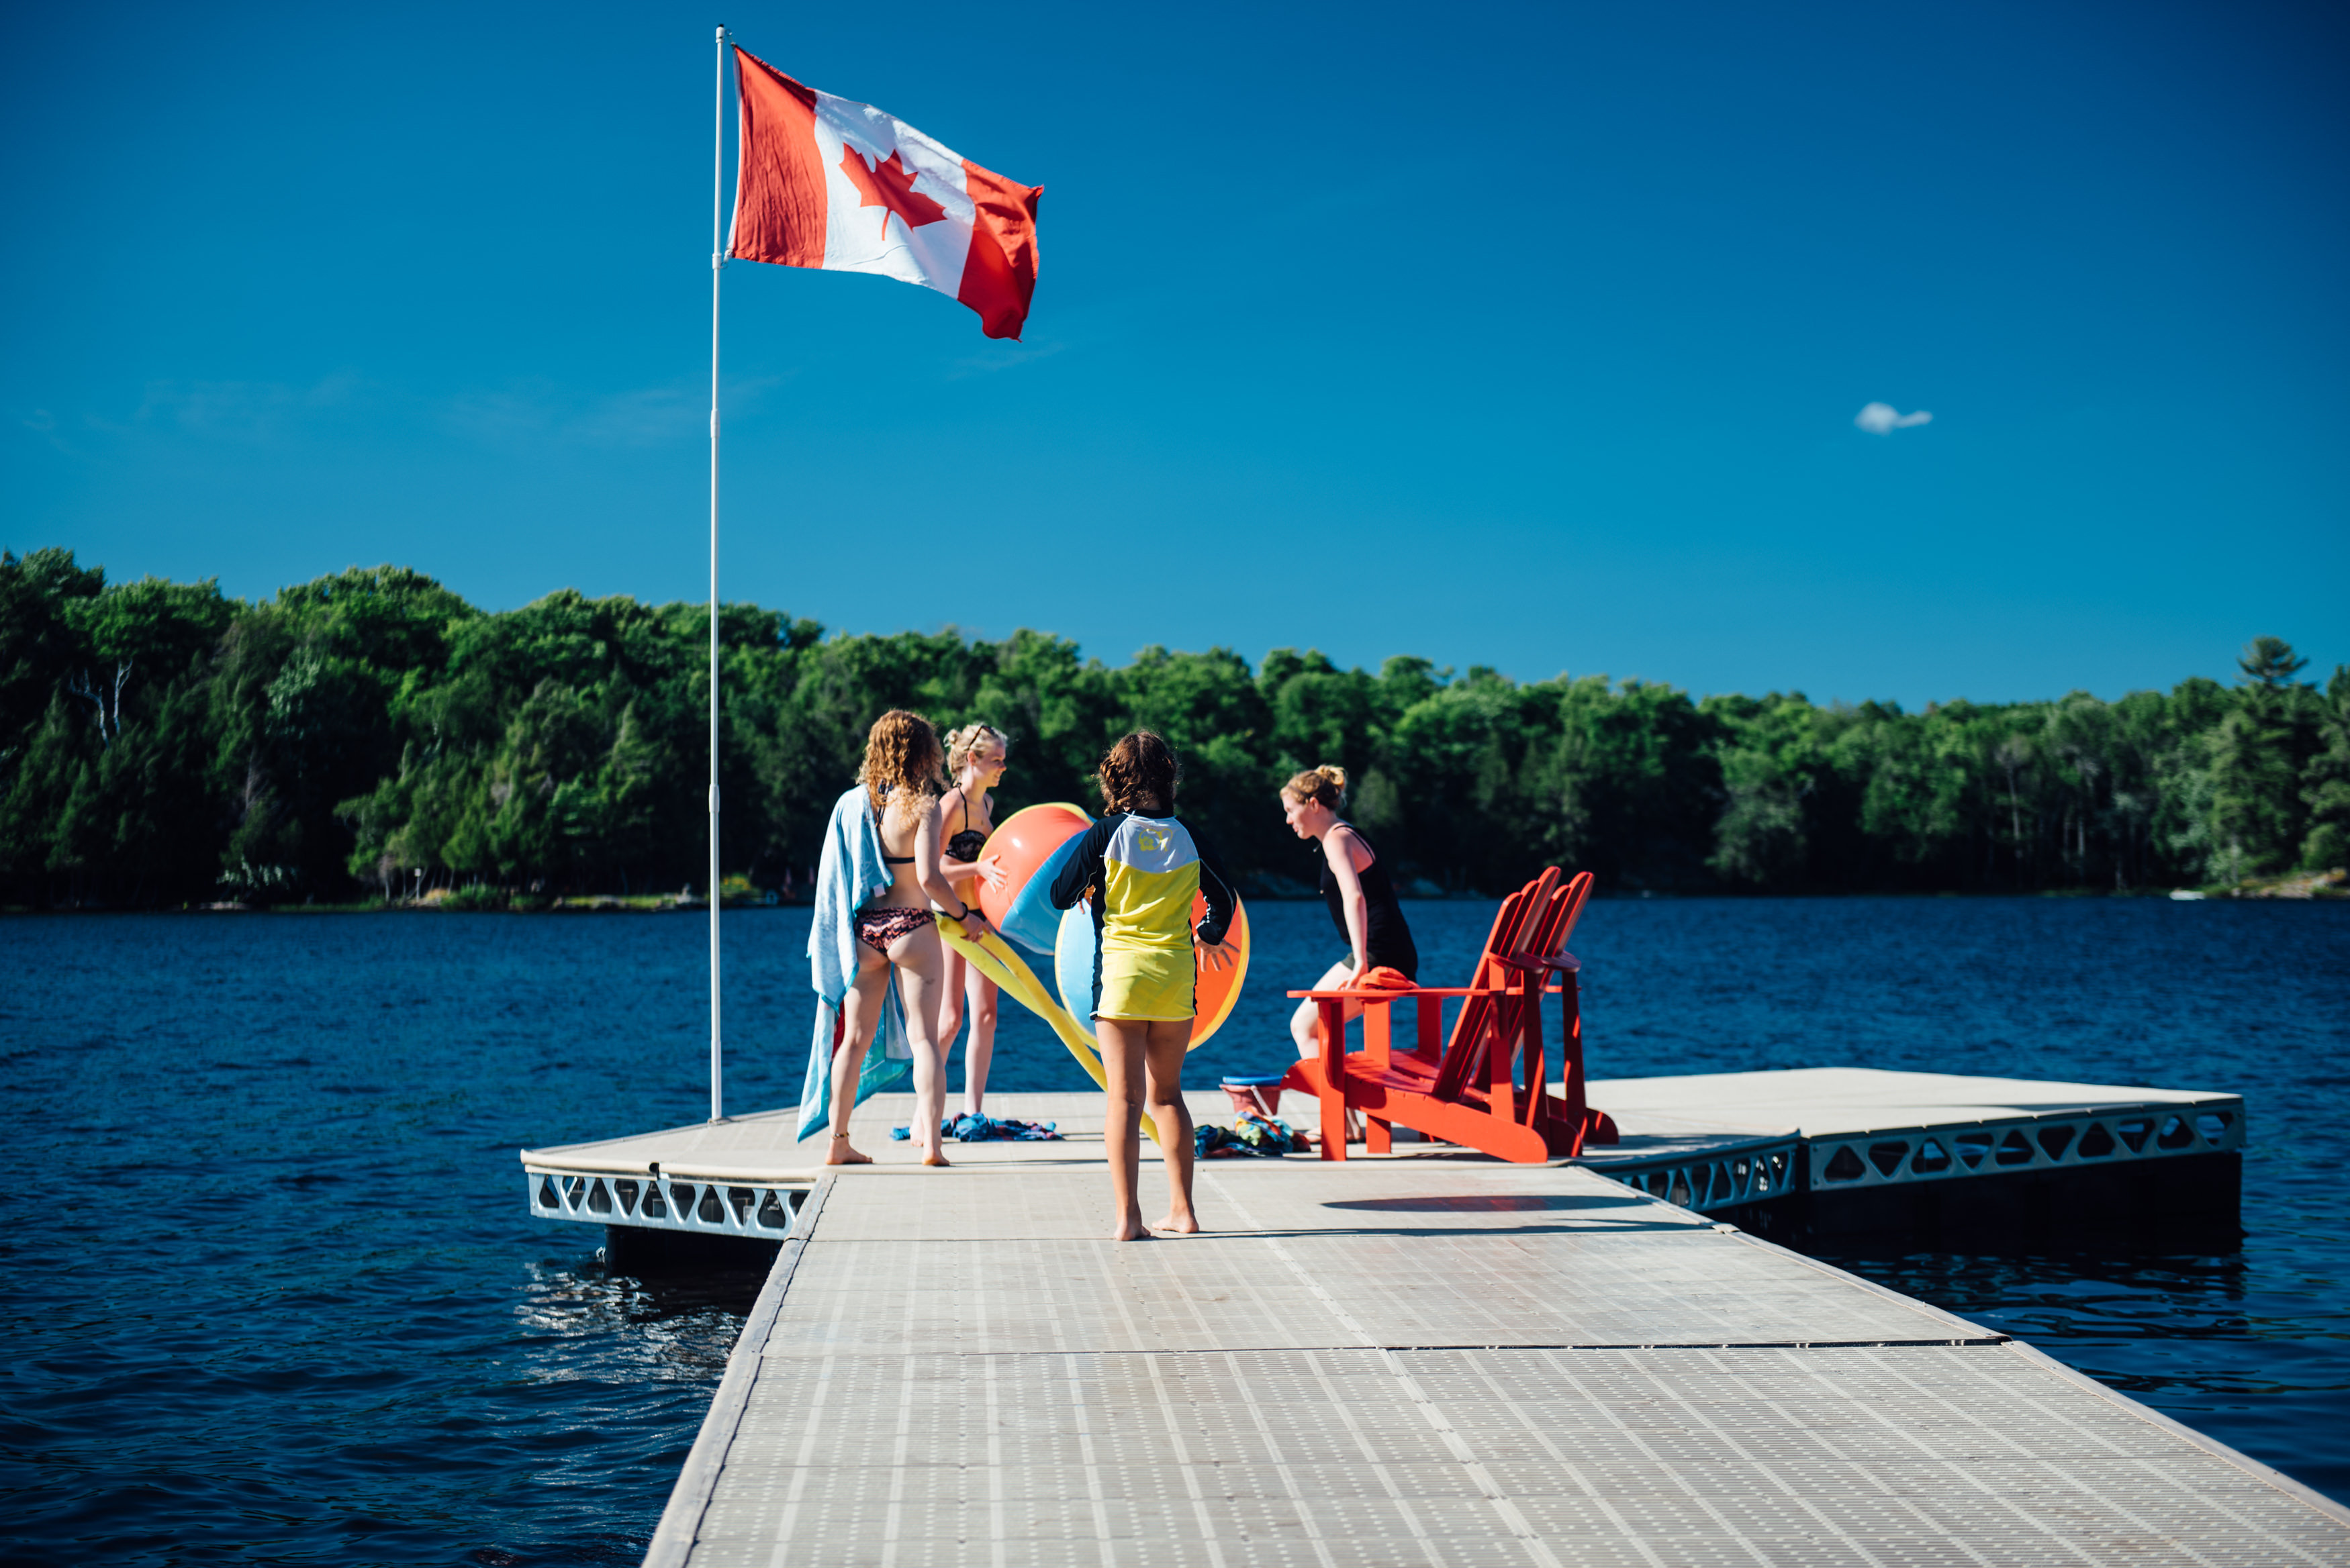 Playing on the dock with beach balls